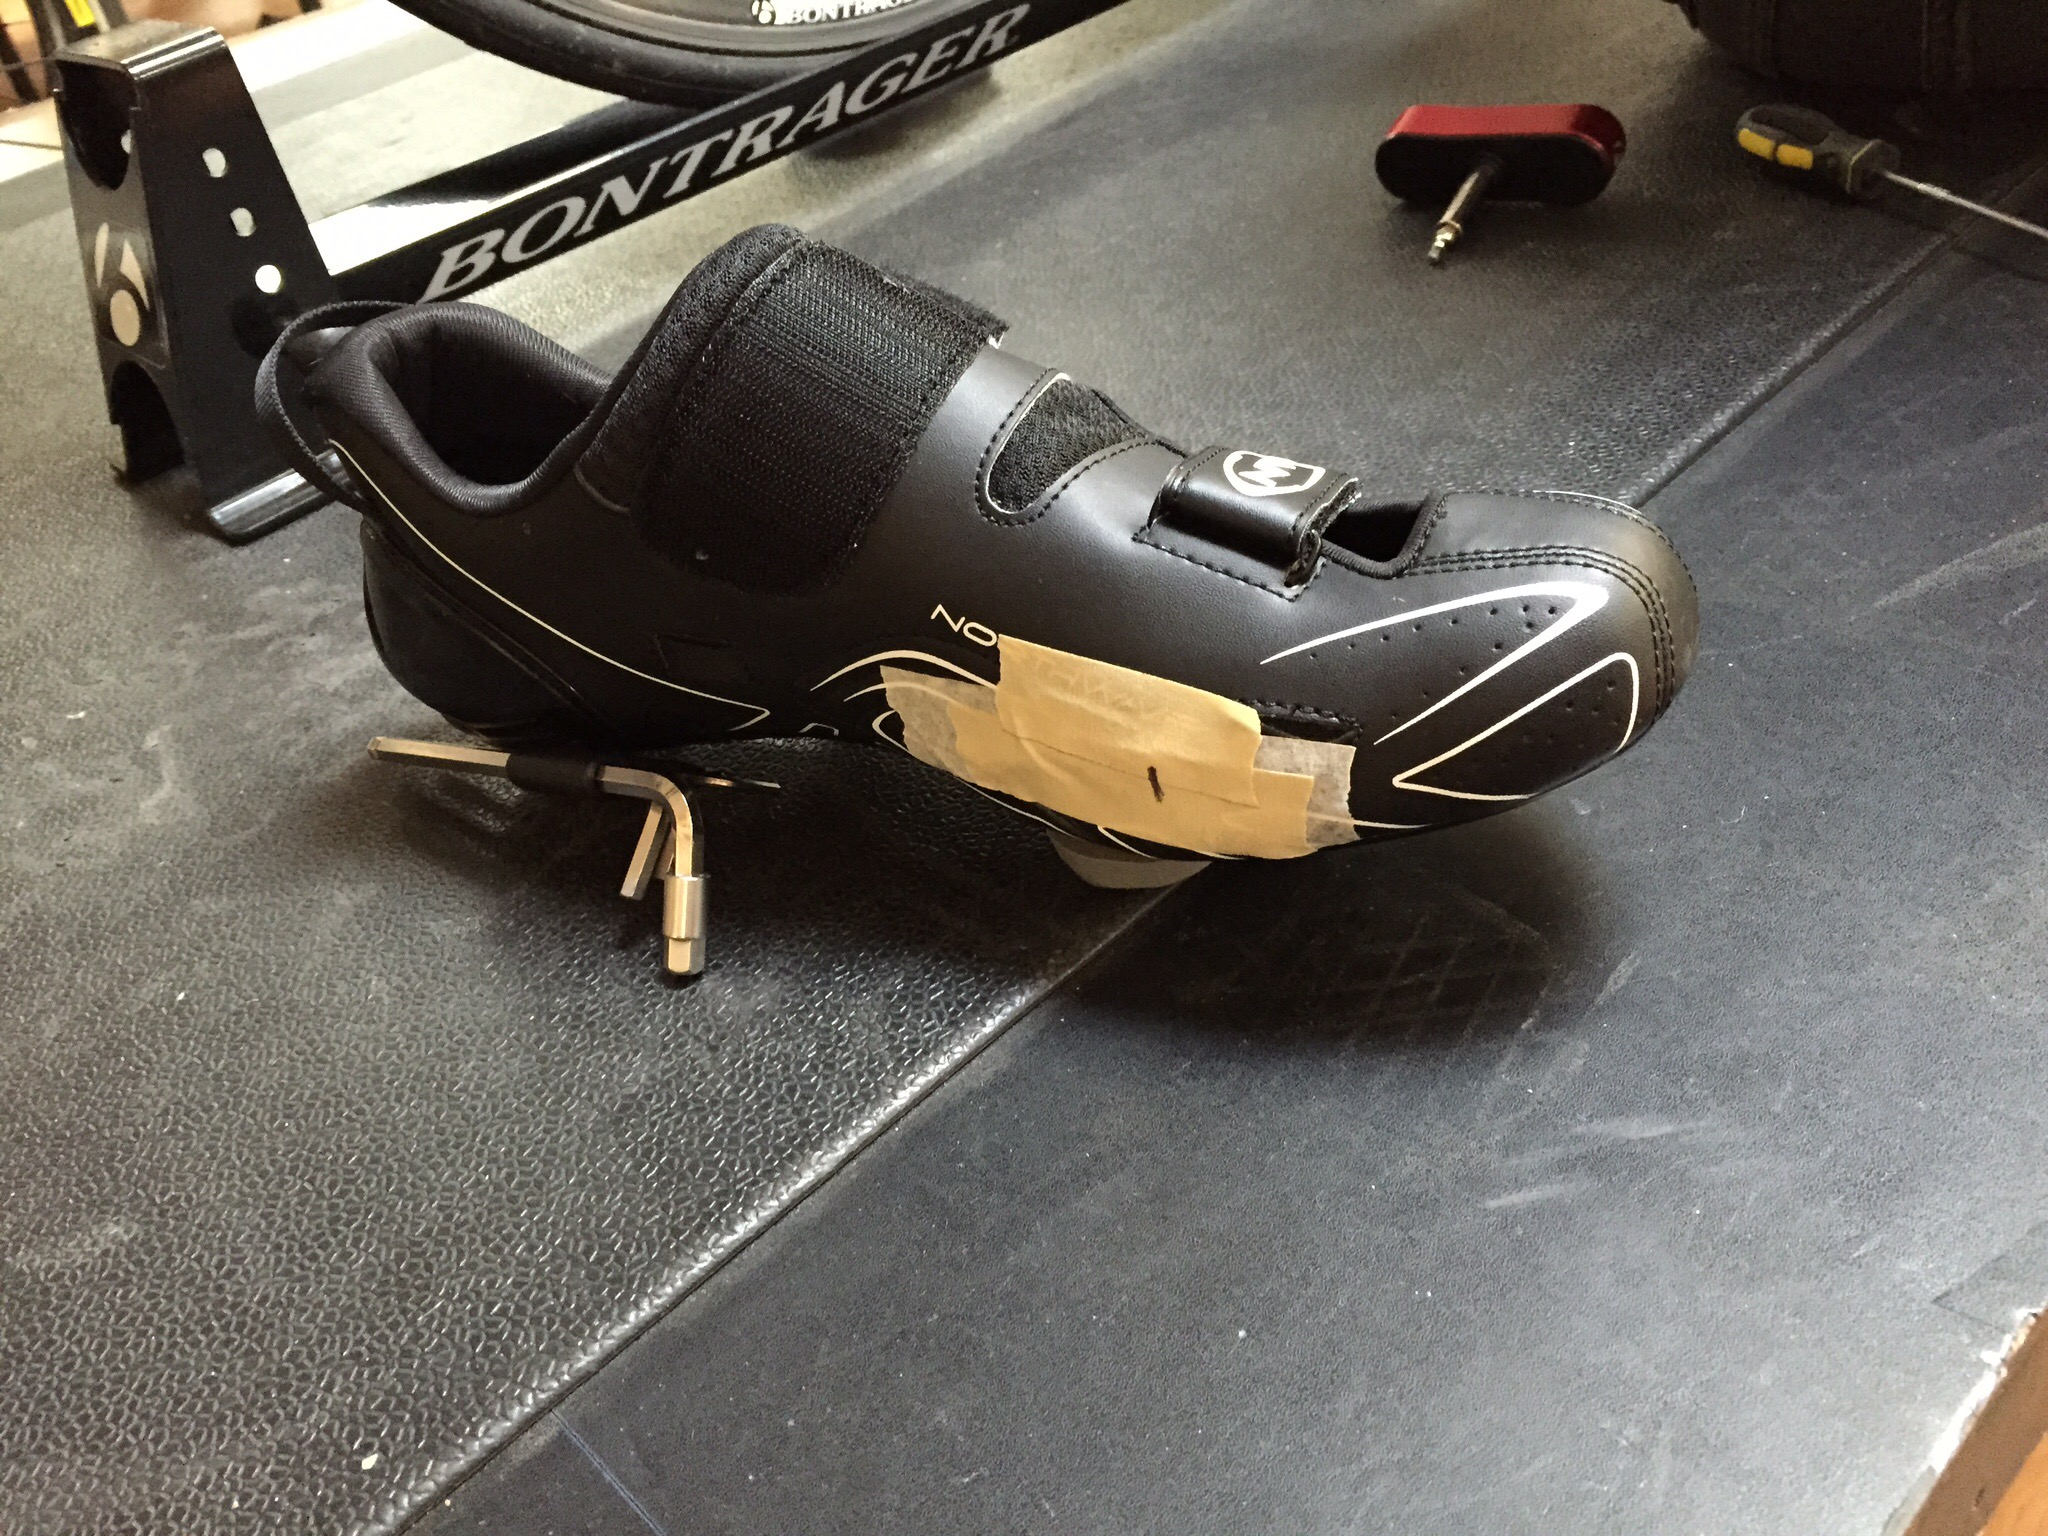 Bike fit cleat adjustment